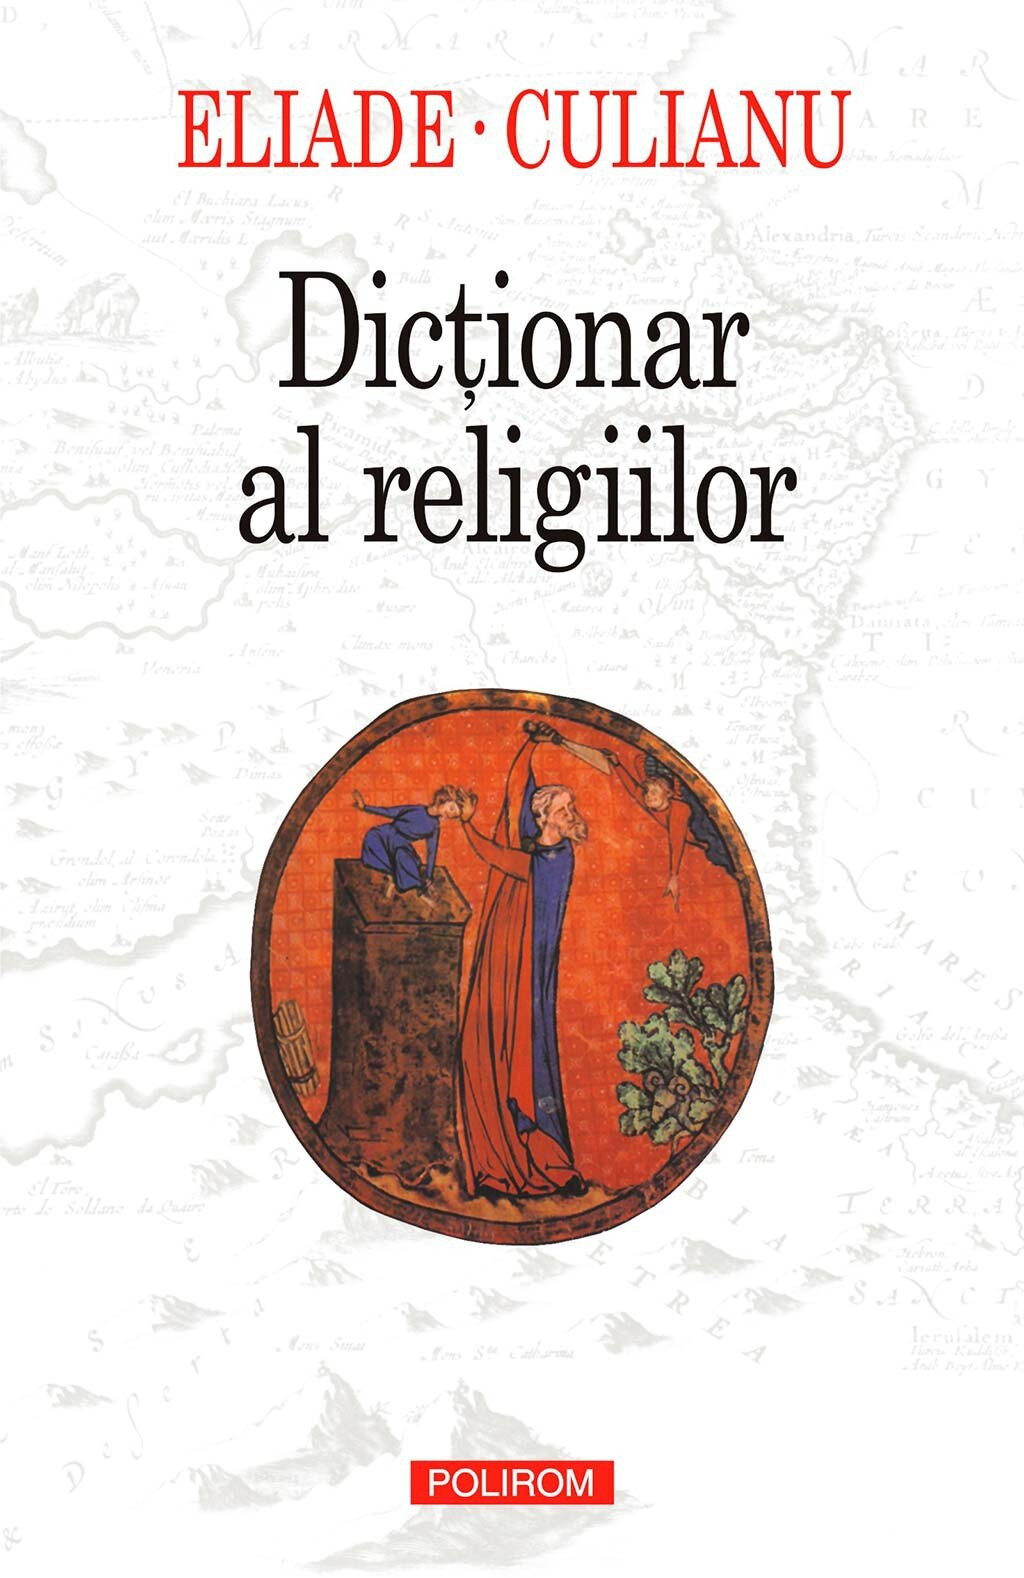 Dictionar al religiilor PDF (Download eBook)